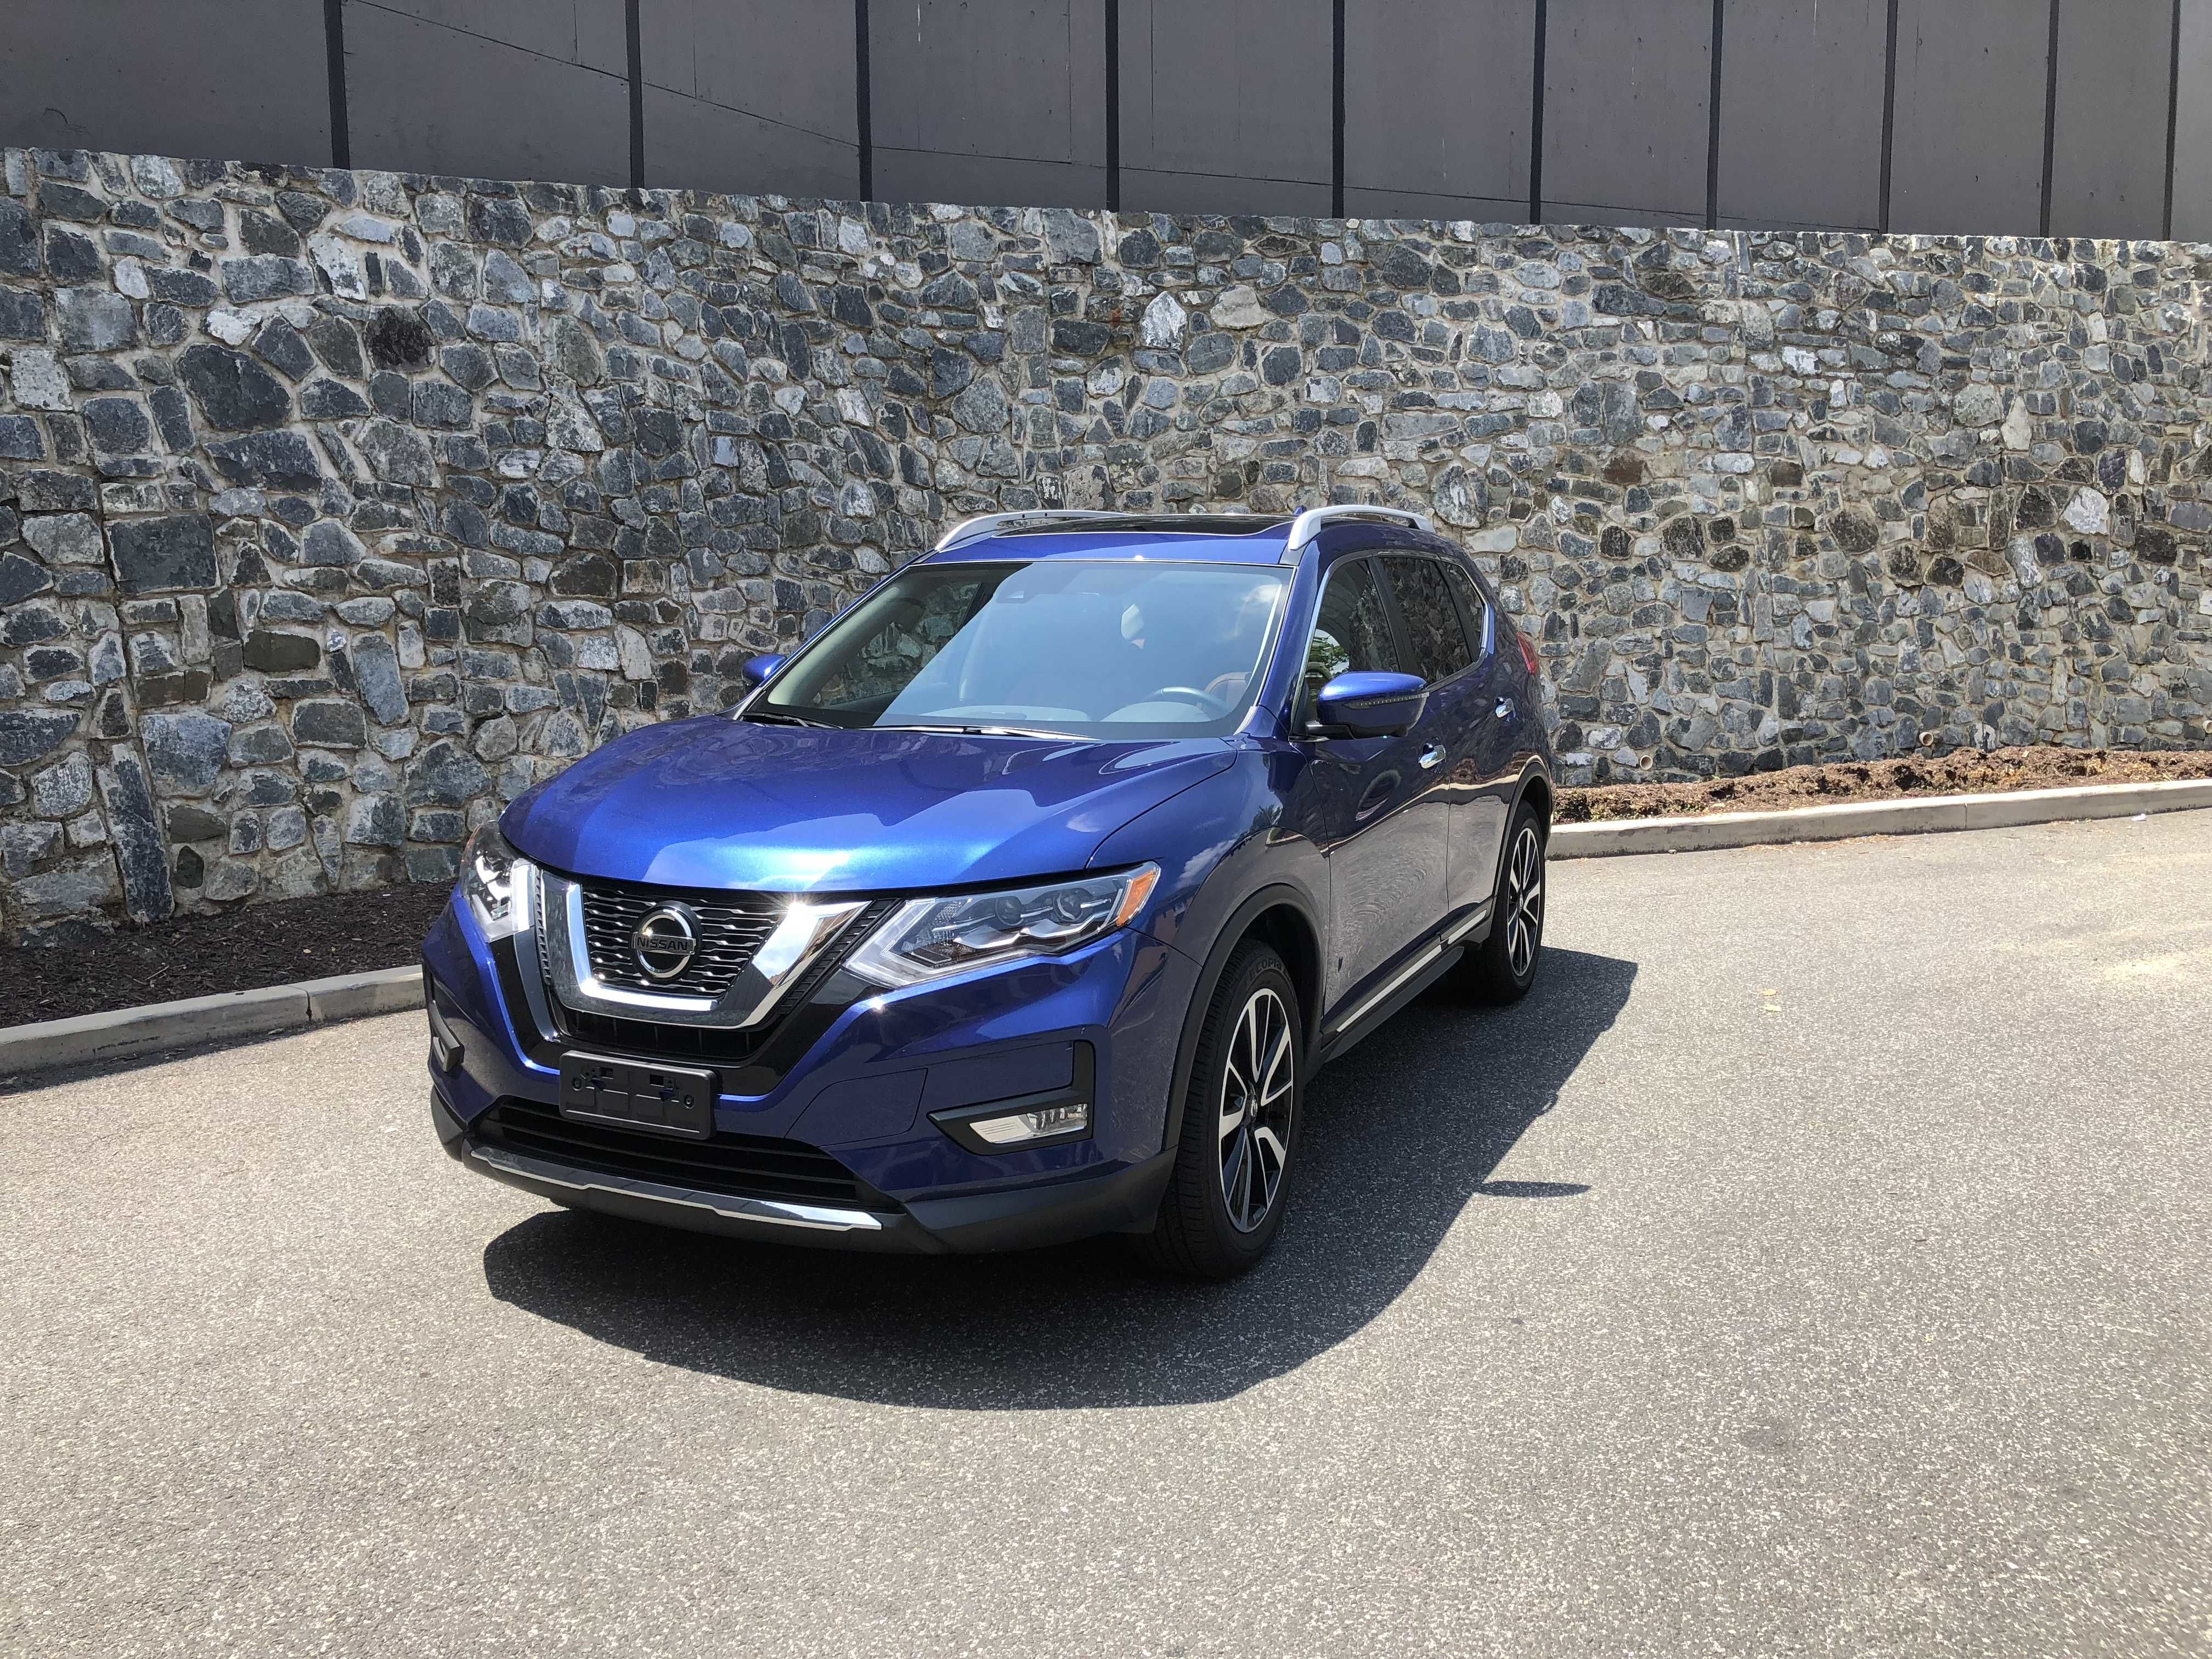 Car Review Nissan Rogue Looks To New Tech To Be Head Of The Compact Crossover Class Wtop